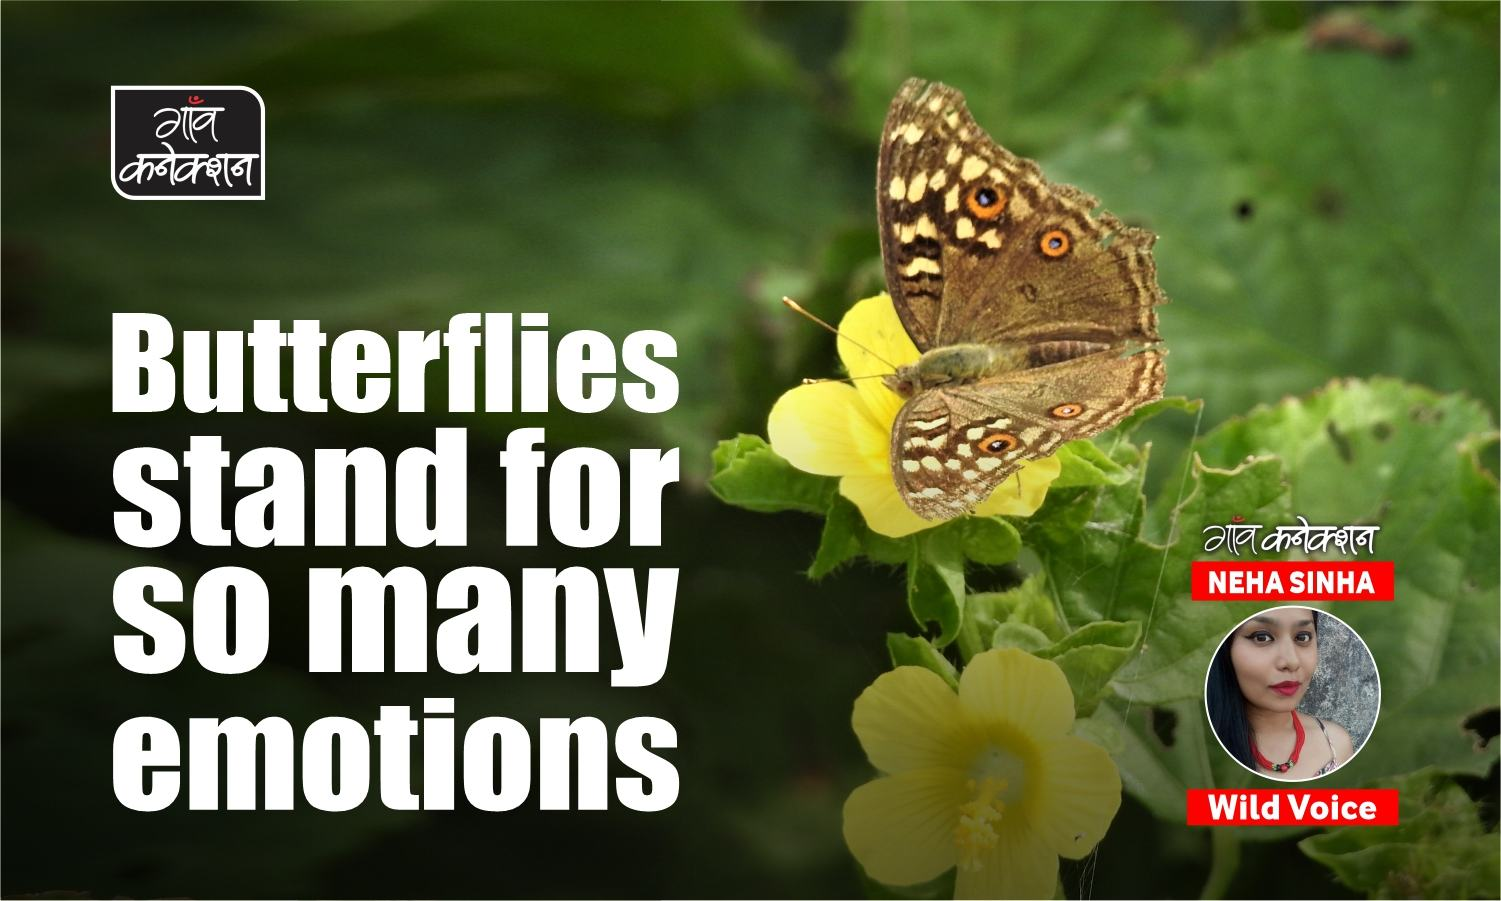 As parts of the world become hotter and drier, one wonders where the butterflies will go